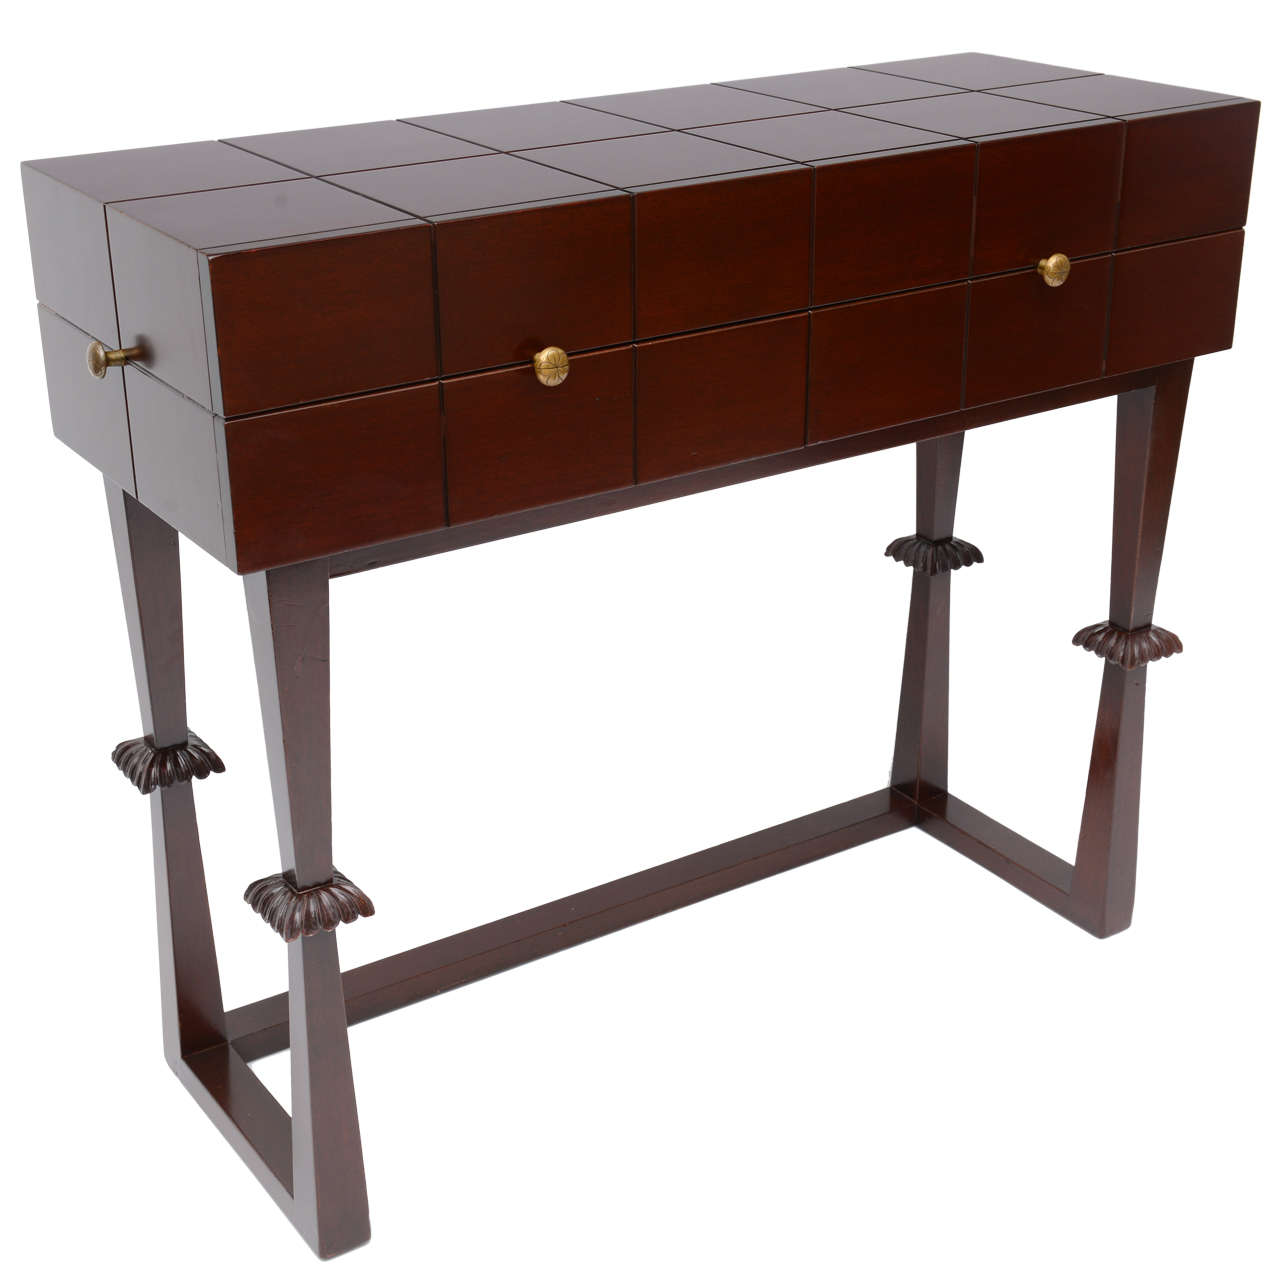 Tommi Parzinger Commode/Credenza